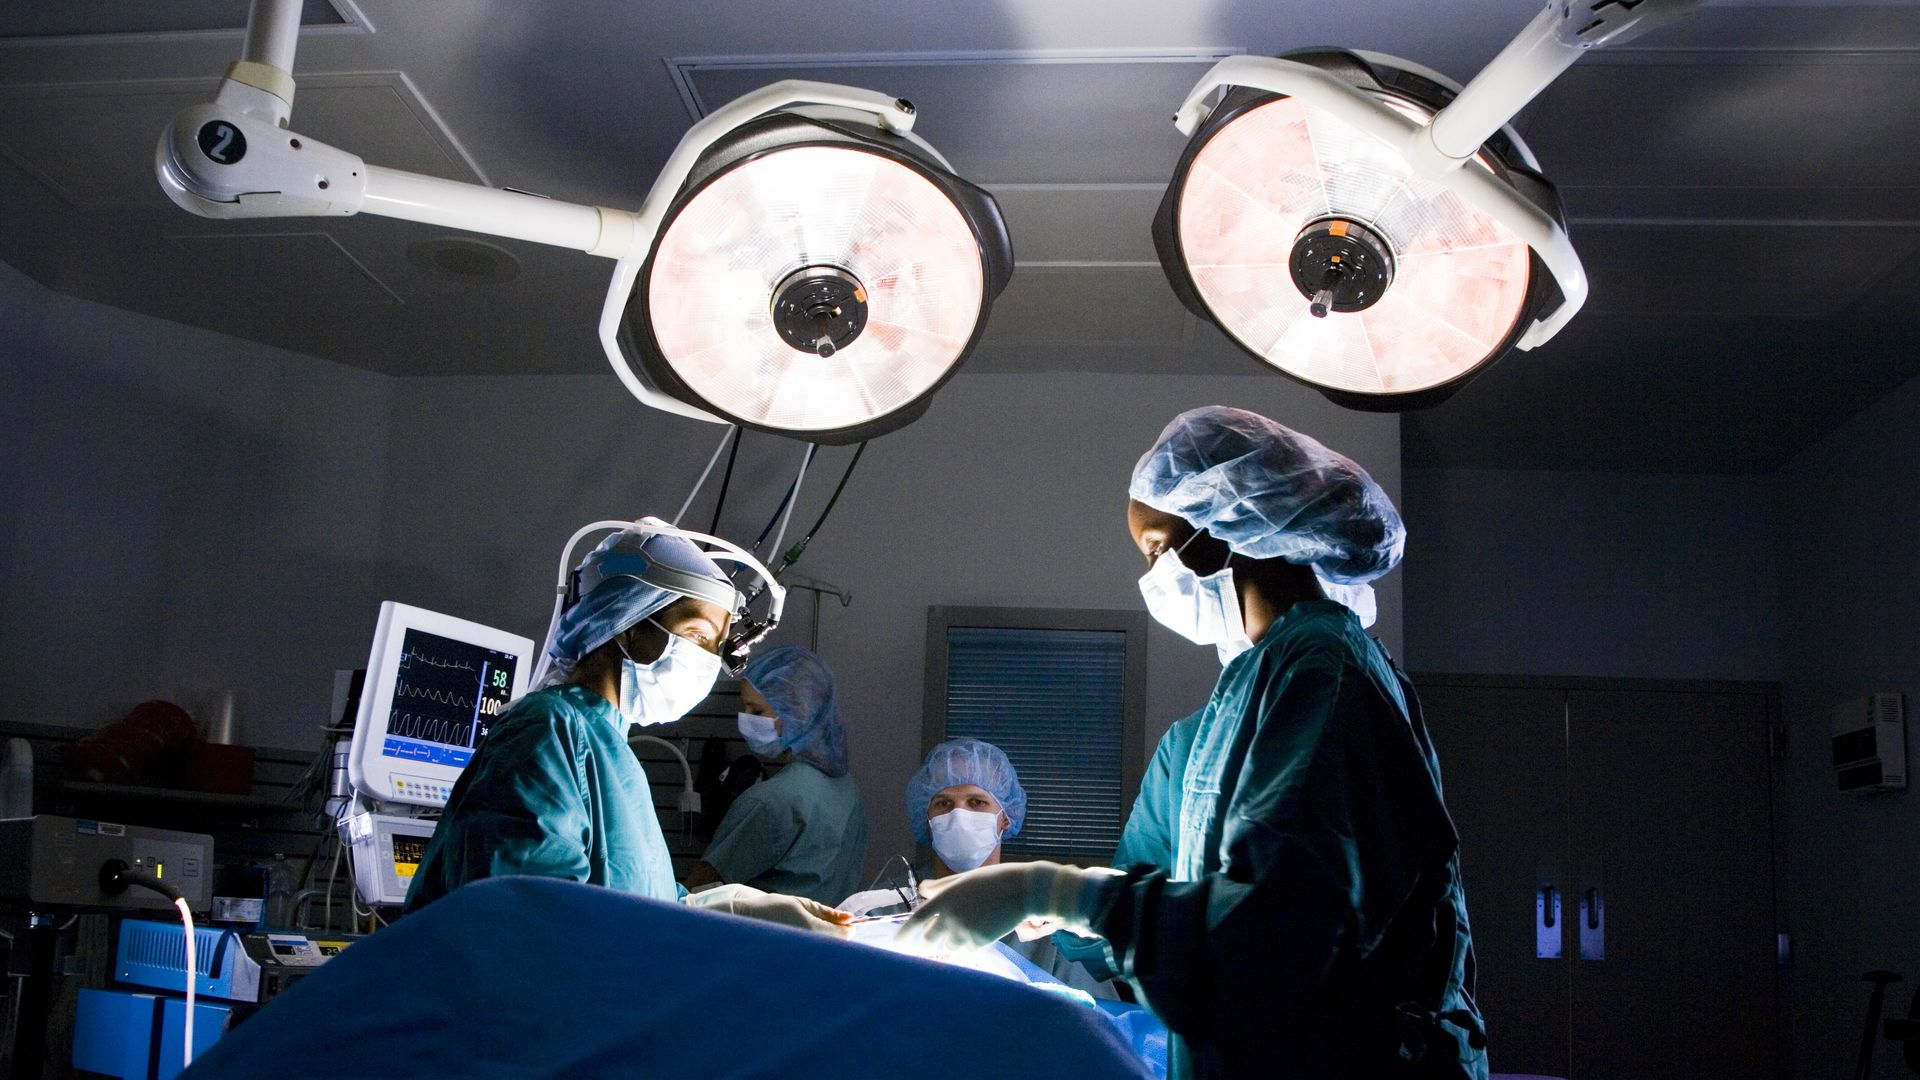 In this image, three surgeons stand under bright lights in a dark operating room.